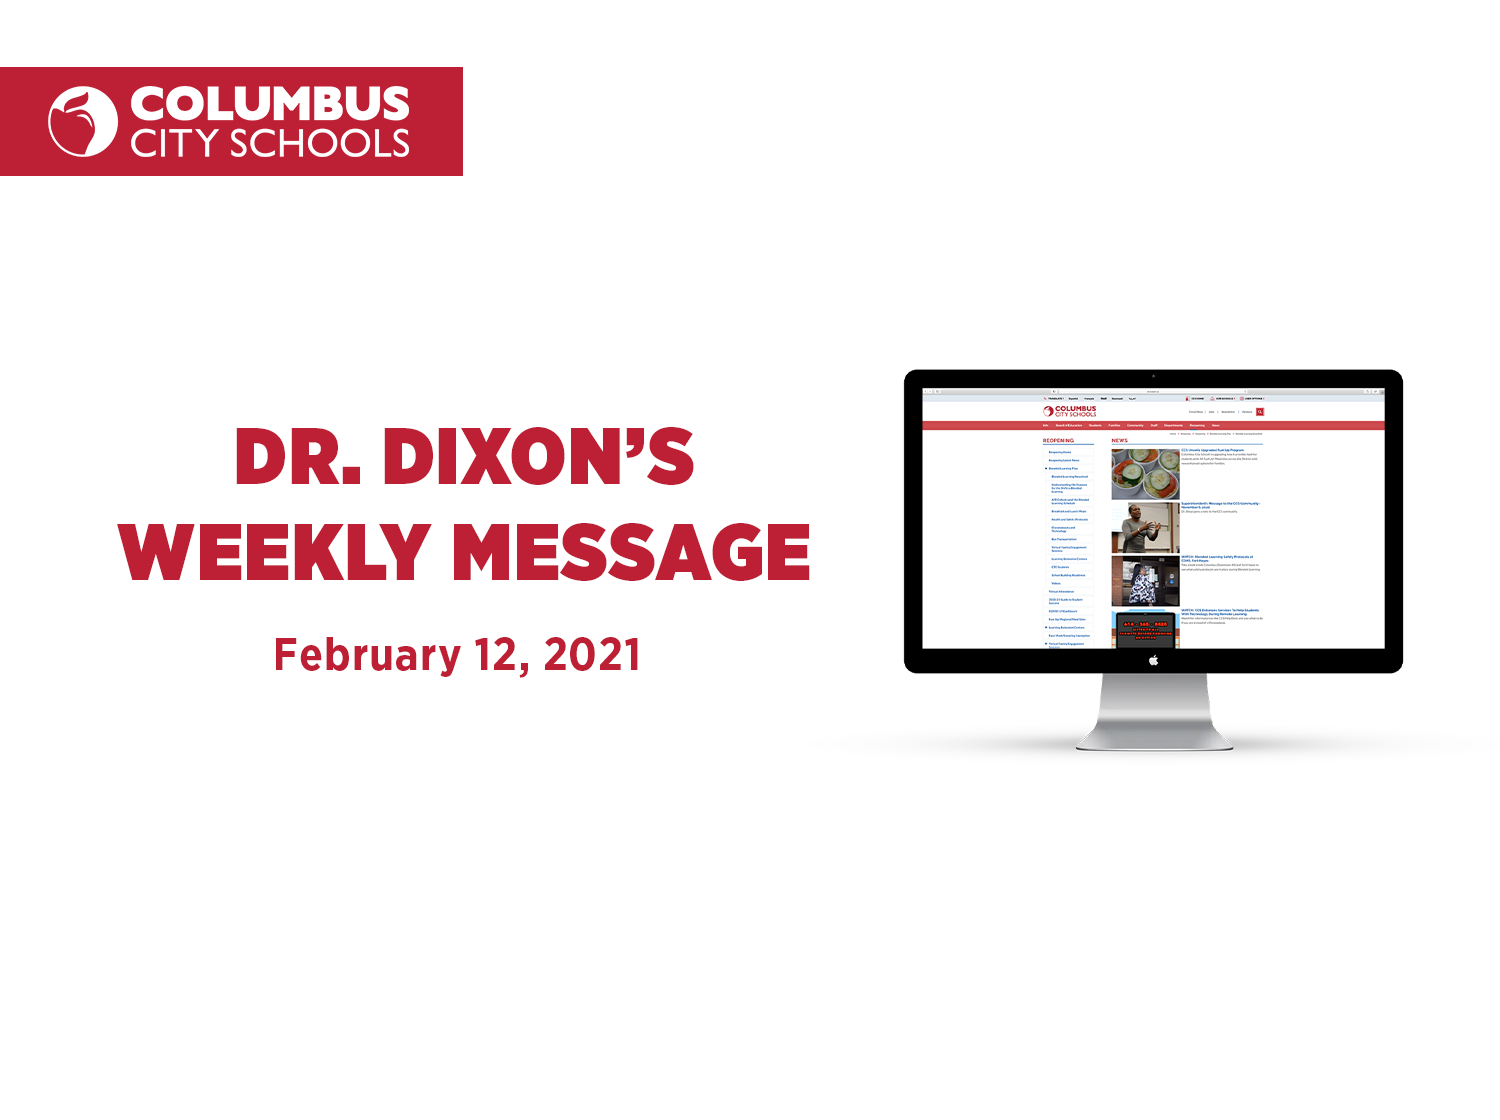 Dr. Dixon's Weekly Message